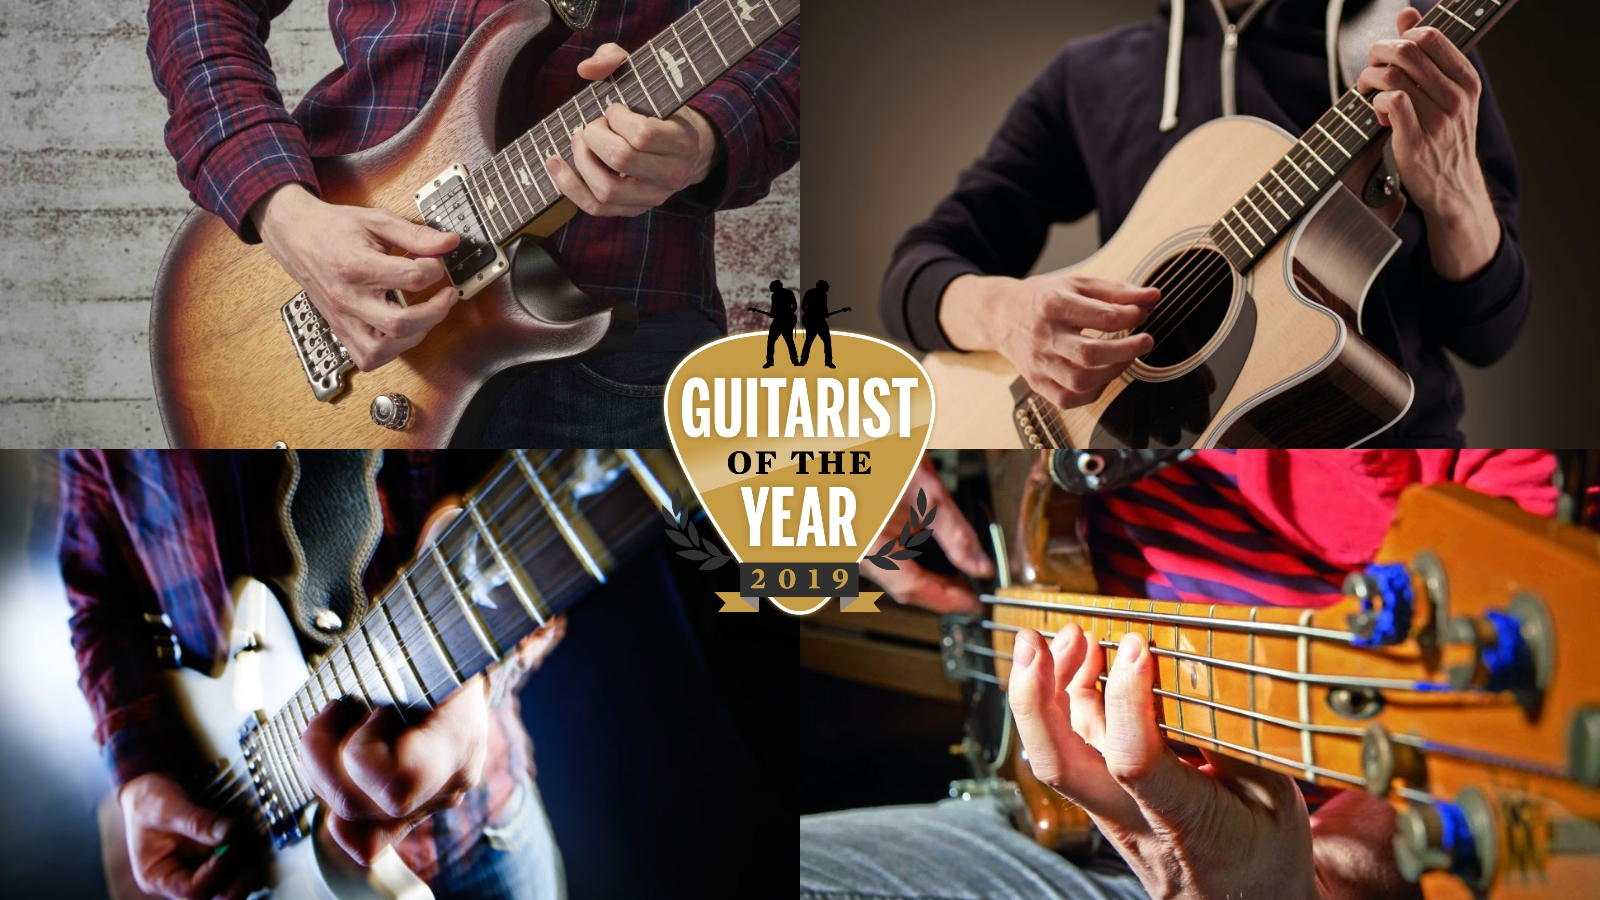 Guitarist of the Year 2019: how to enter and how to win